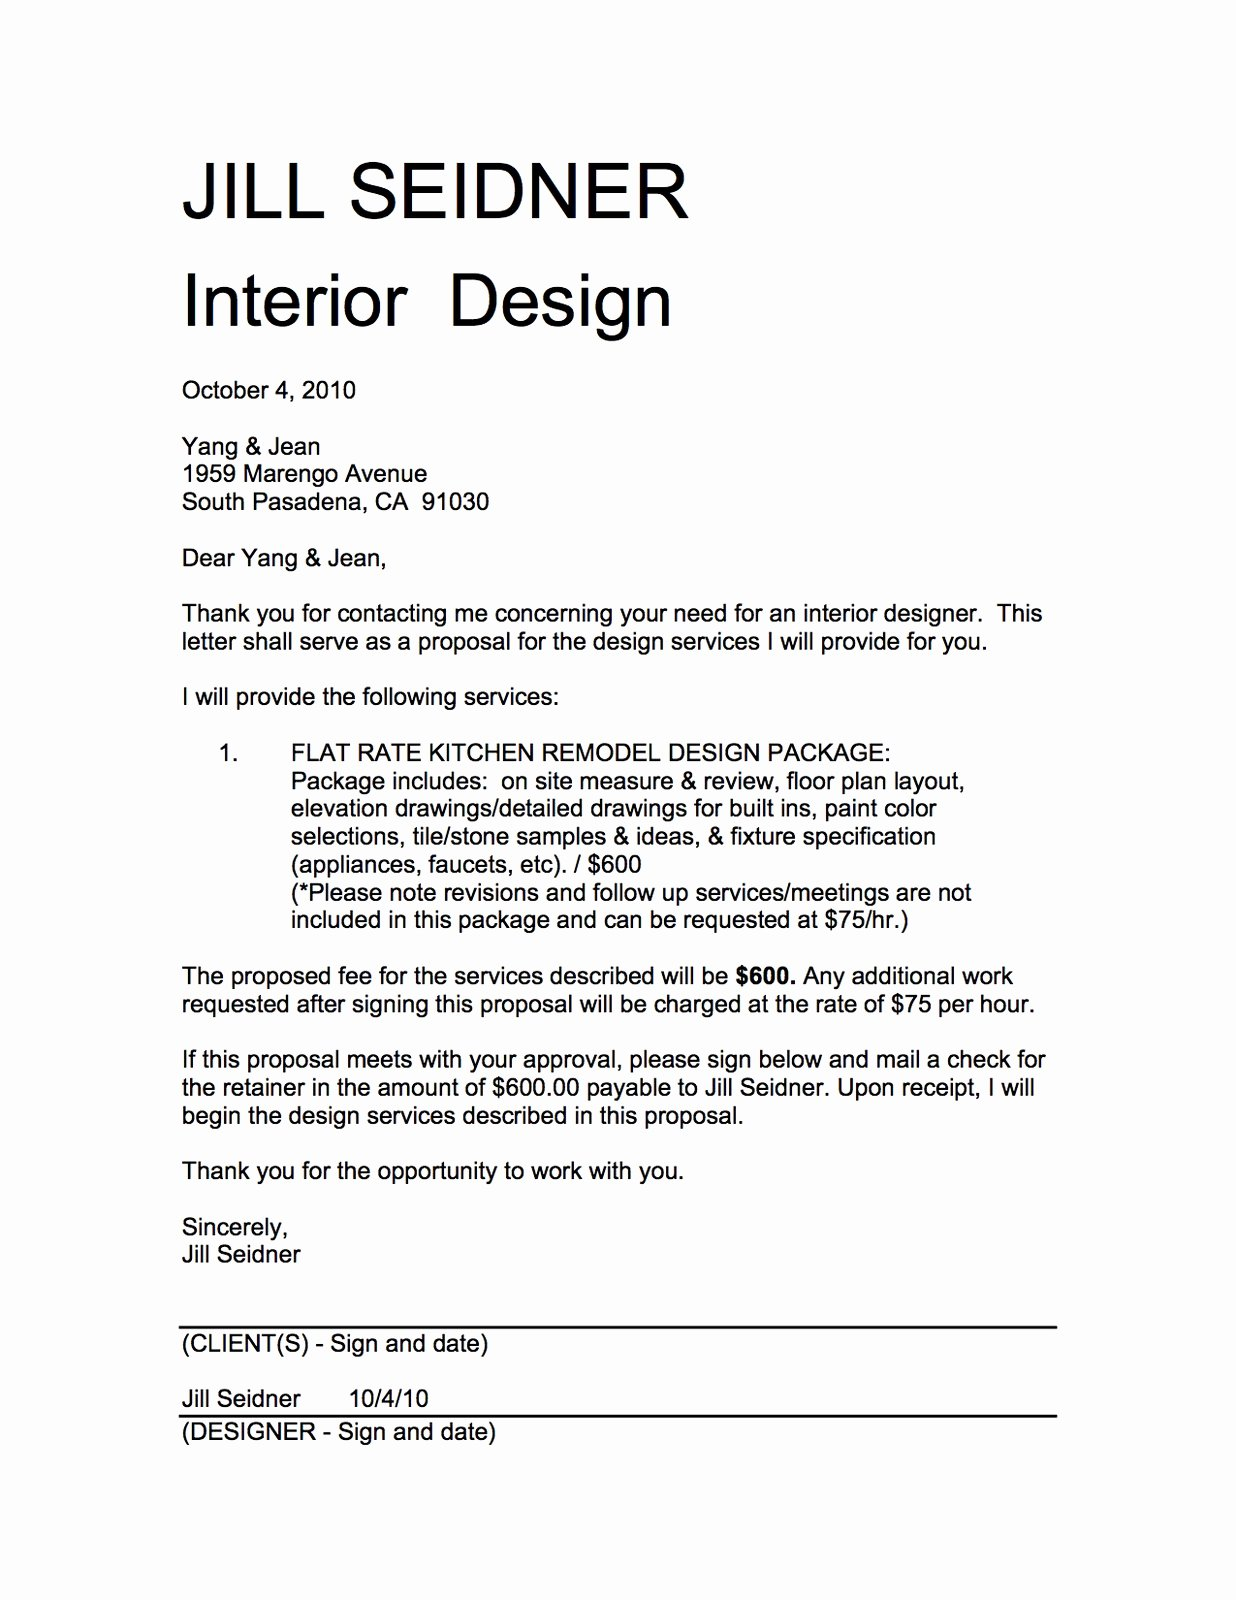 Interior Design Proposal Templates Fresh Jill Seidner Interior Design Yang & Jean Kitchen